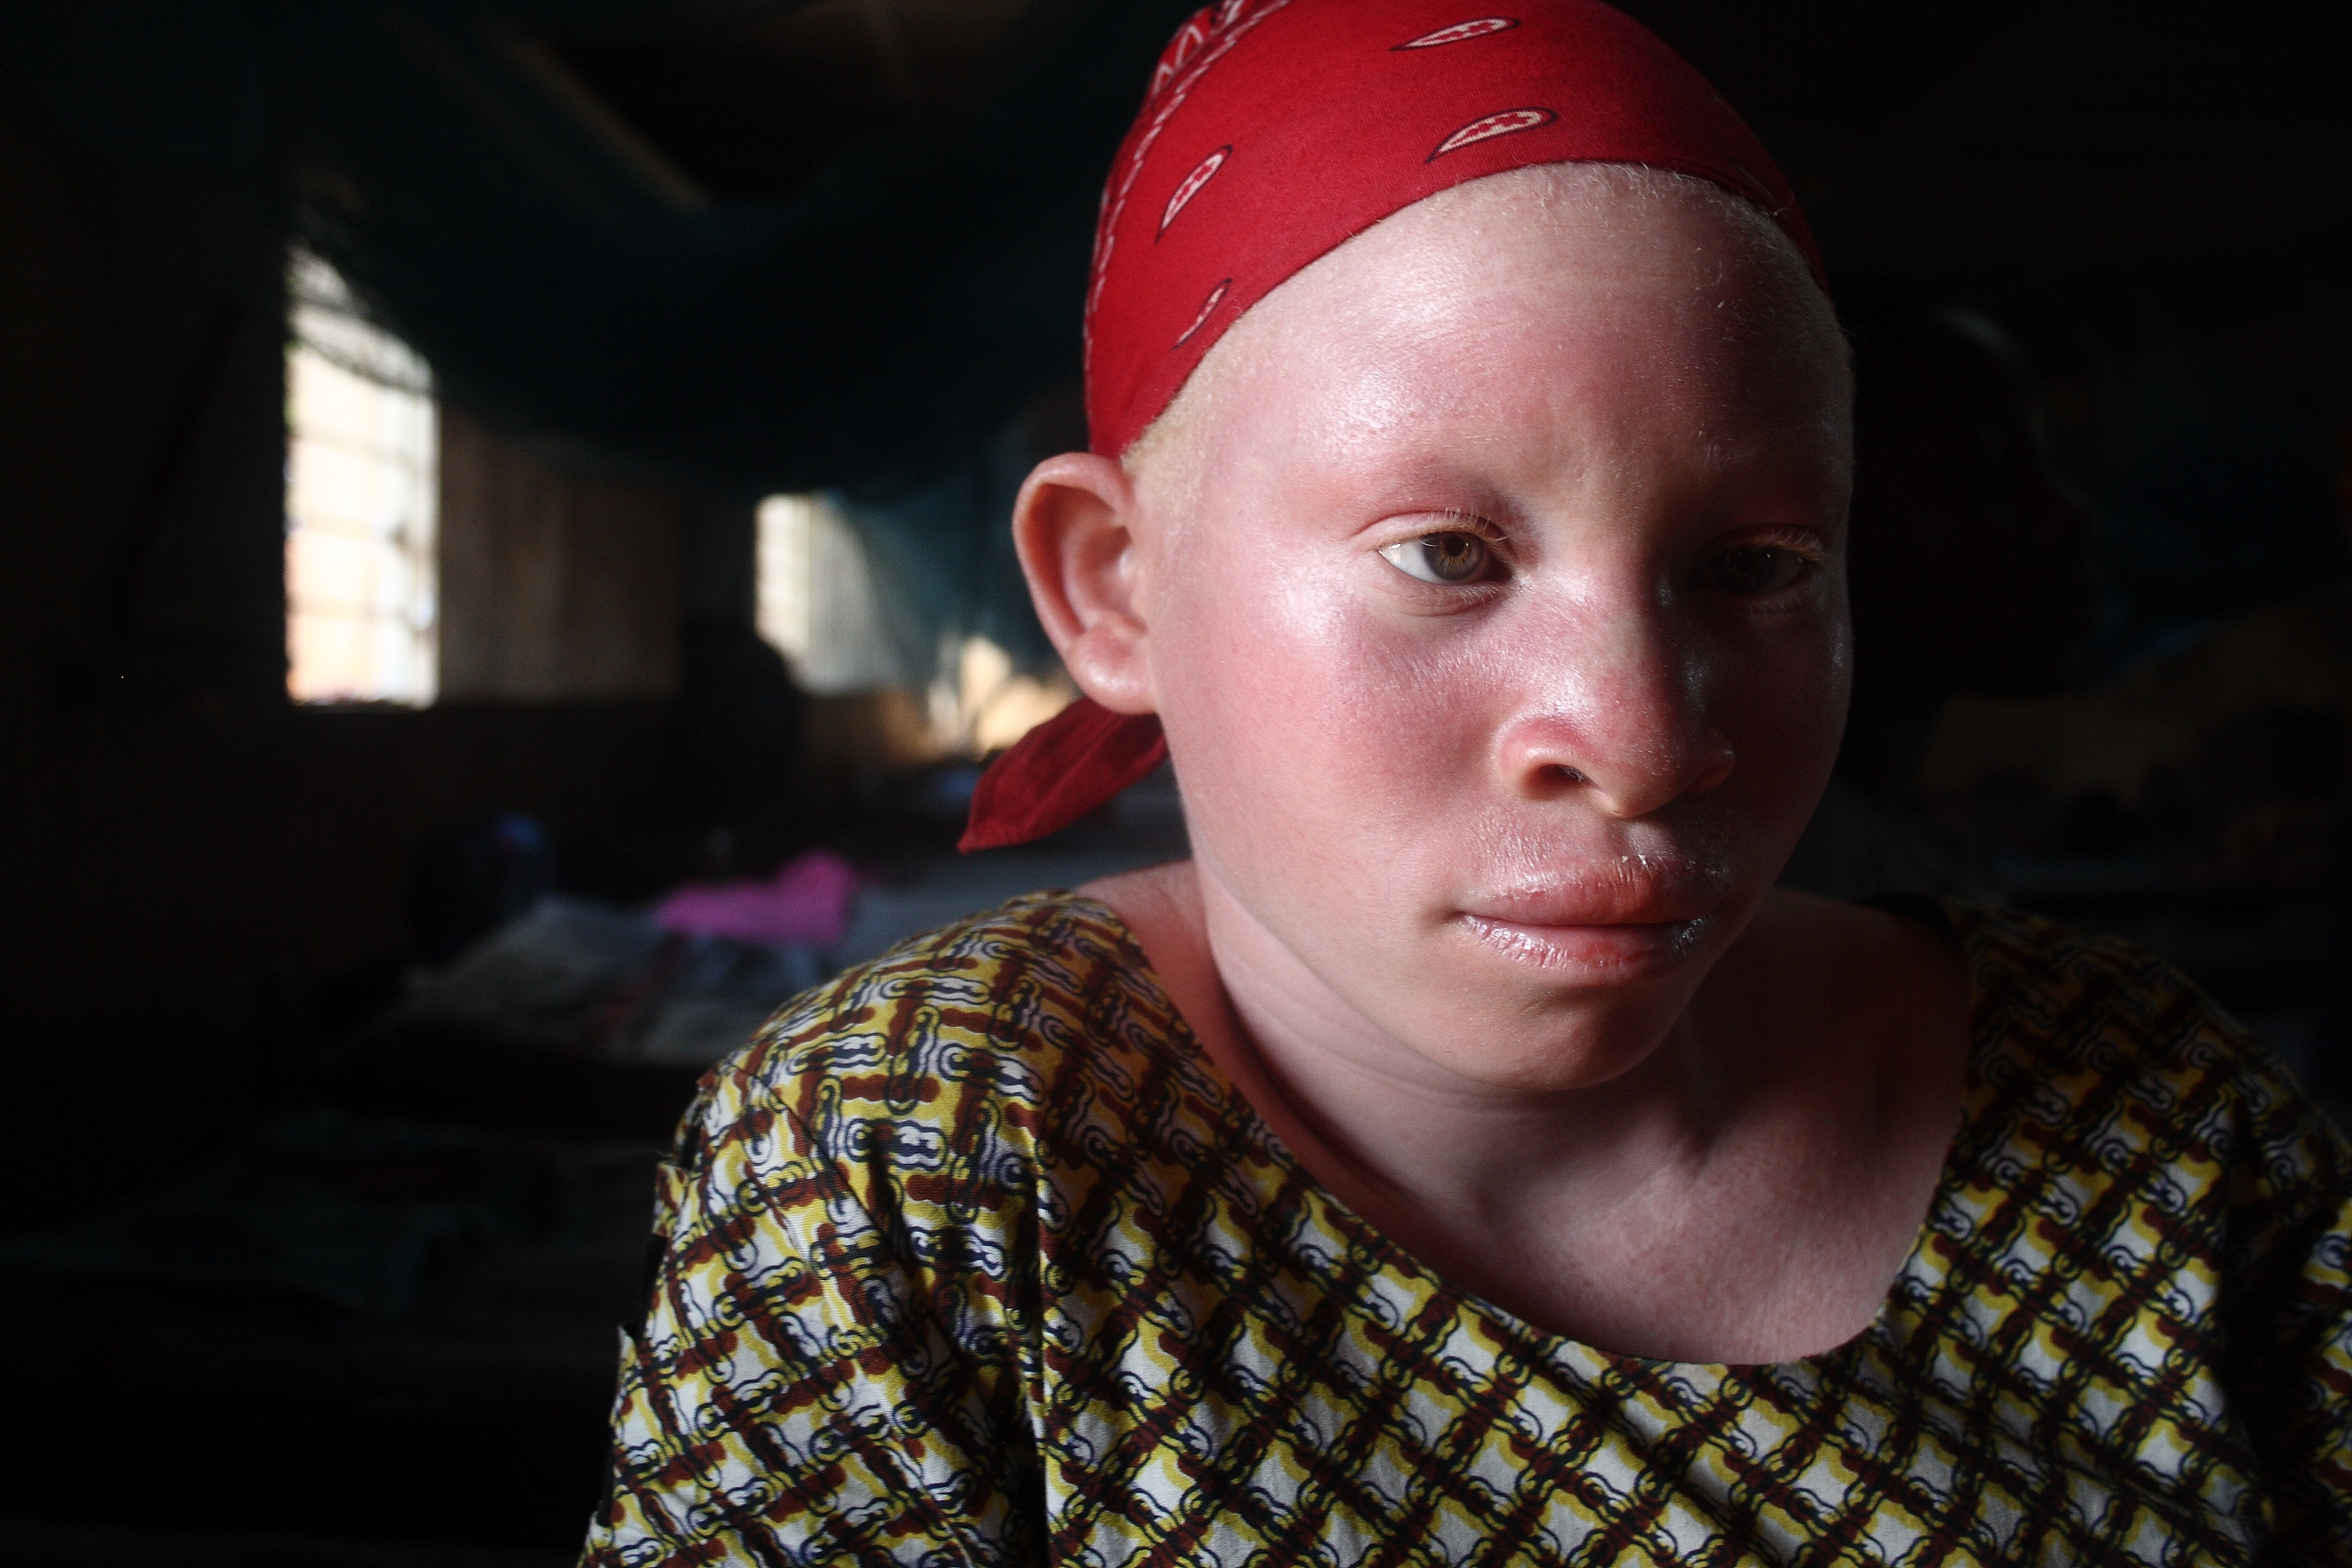 Decoration Americaine Militaire Irin Magic And Murder Albinism In Malawi